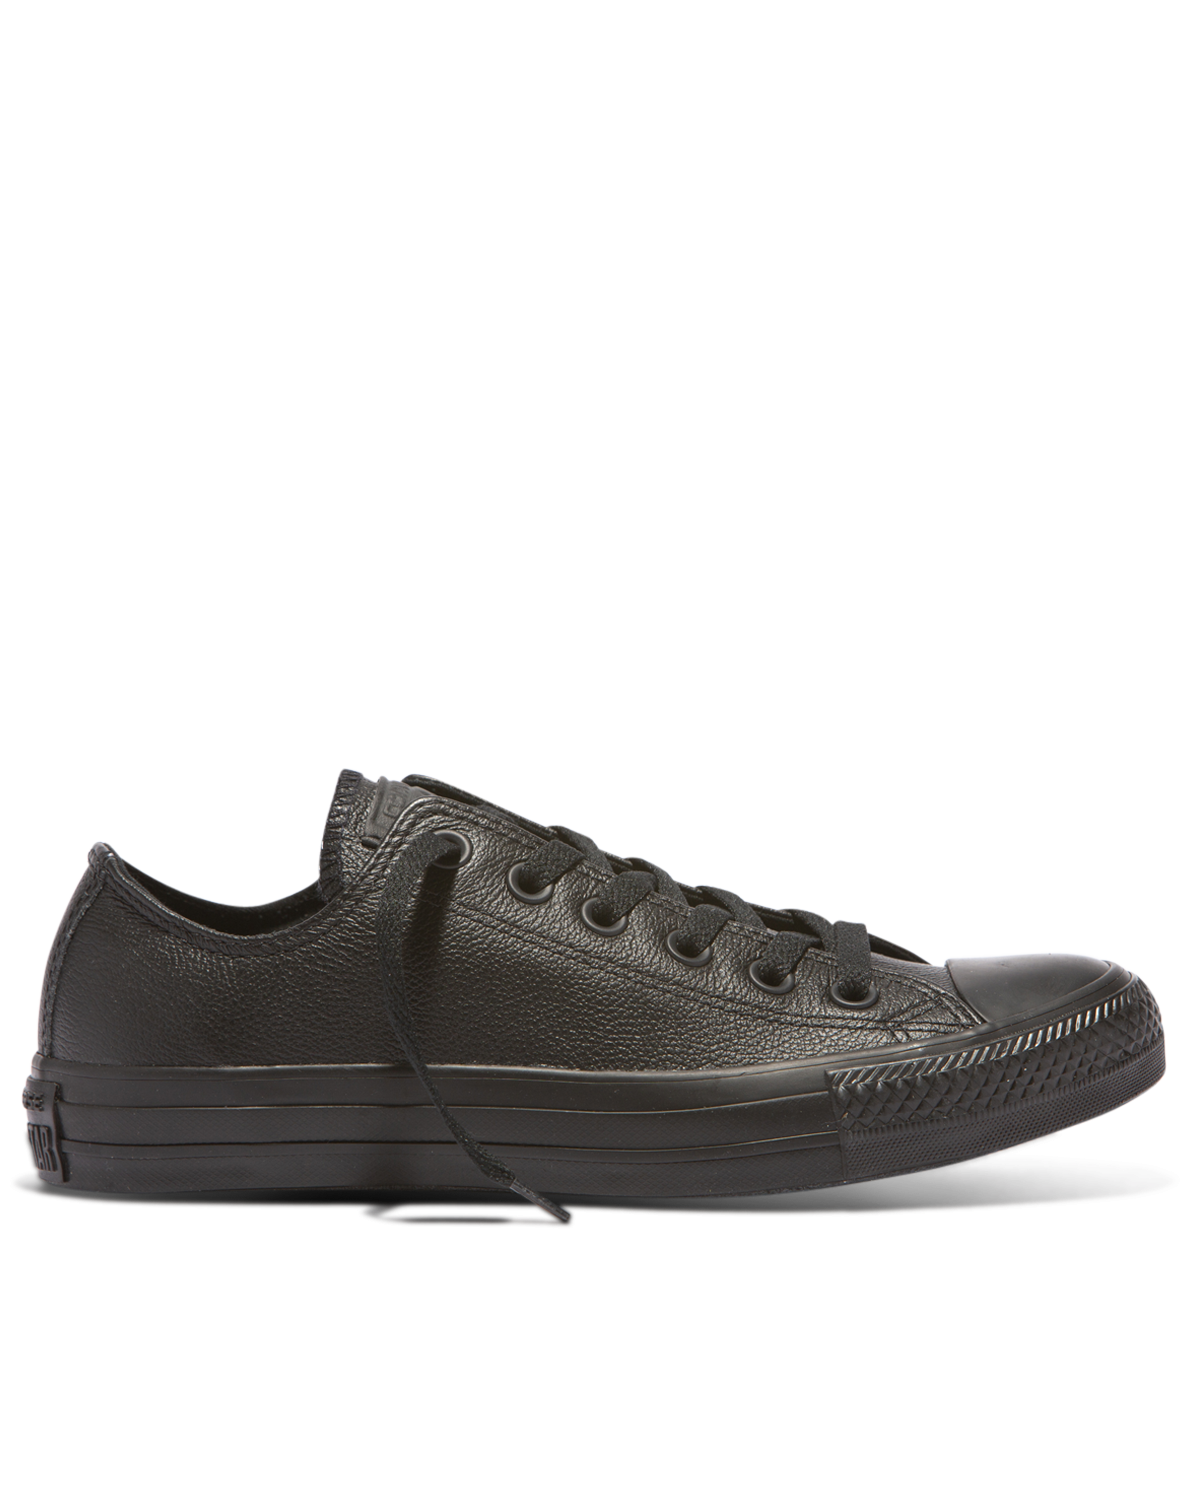 Converse Chuck Taylor Leather Low Top